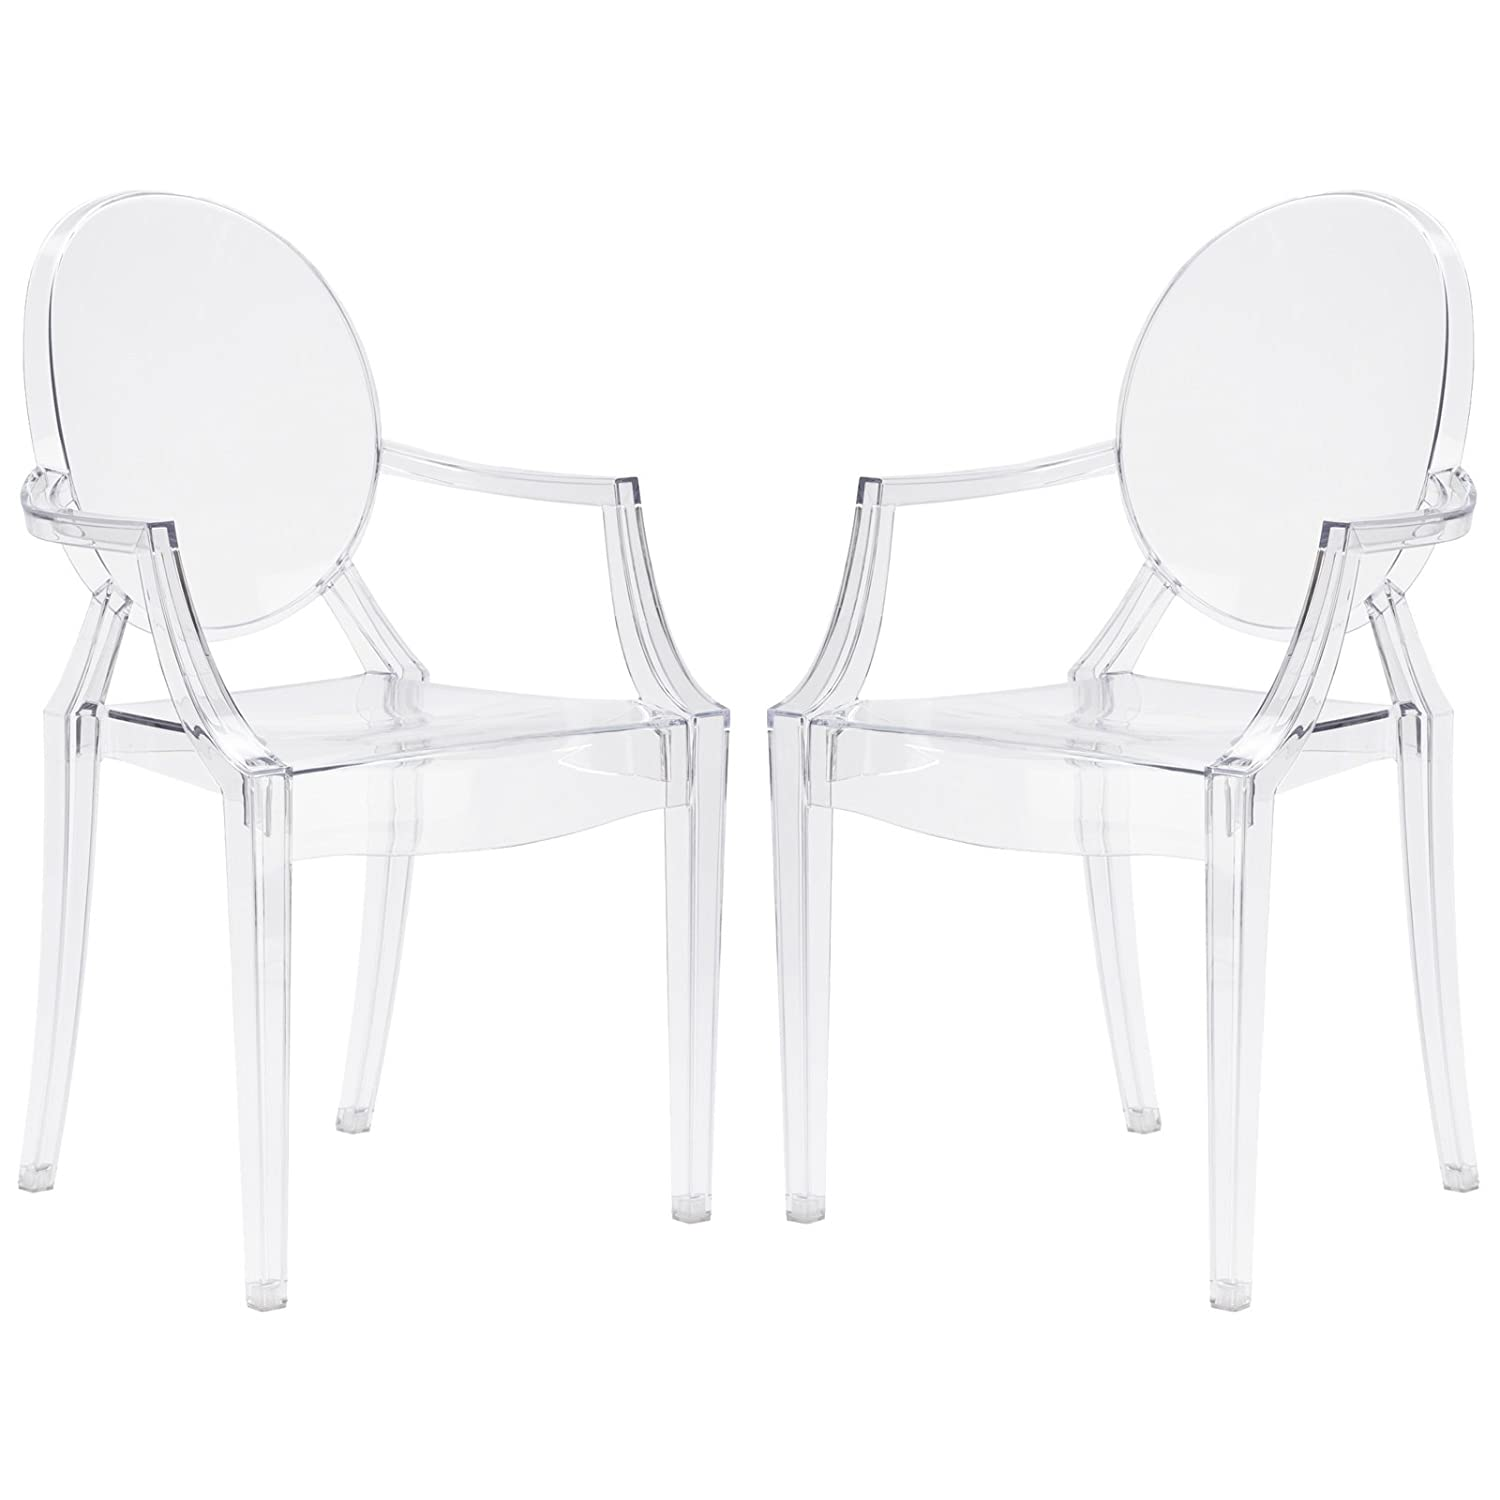 Poly and Bark Burton Arm Plastic Dining and Patio Ghost Chair, Stackable, Fully Assembled, Suitable for Indoor Outdoor, Clear Set of 2